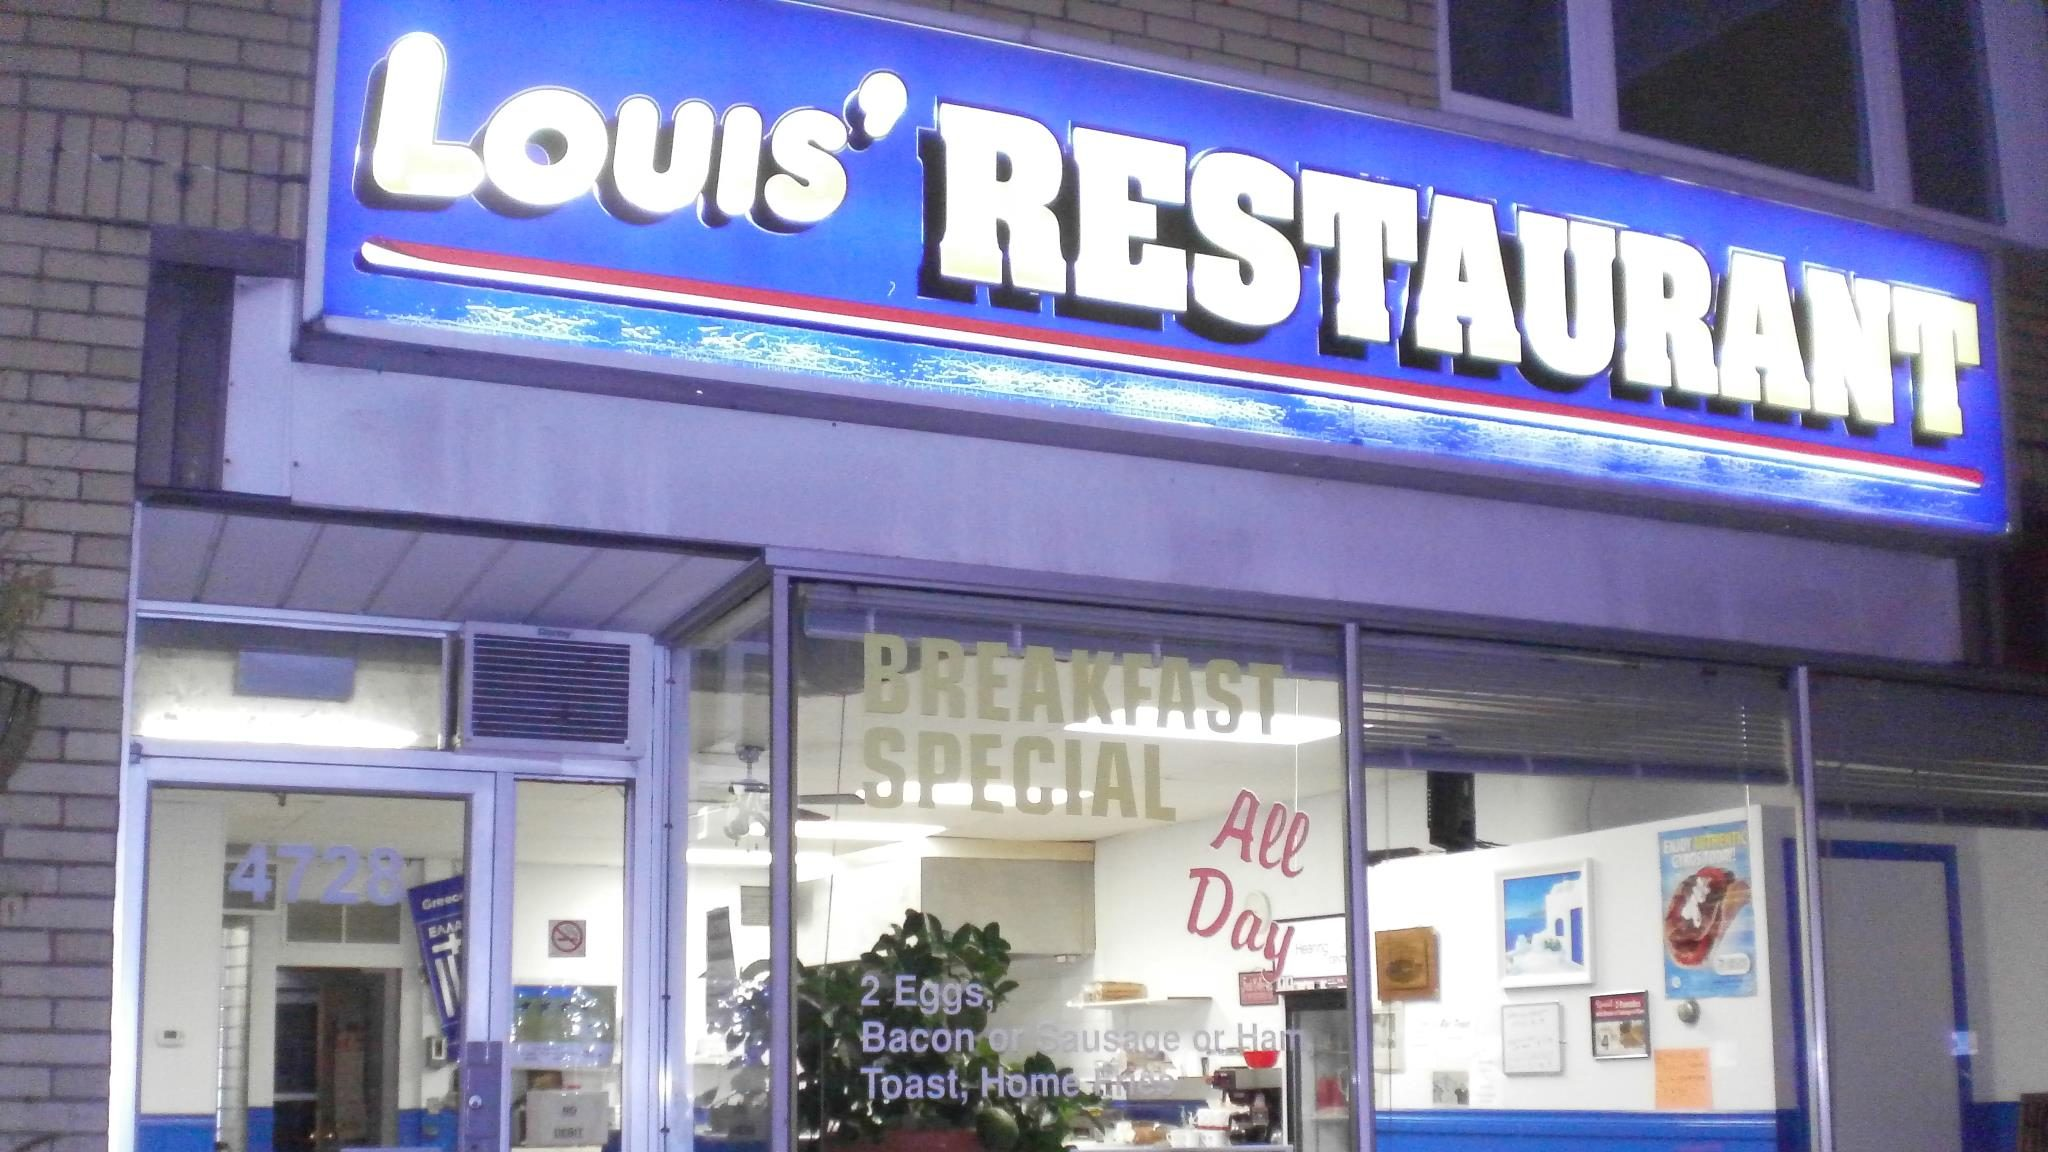 Louis Restaurant in the Pilette Village of Windsor, Ontario.